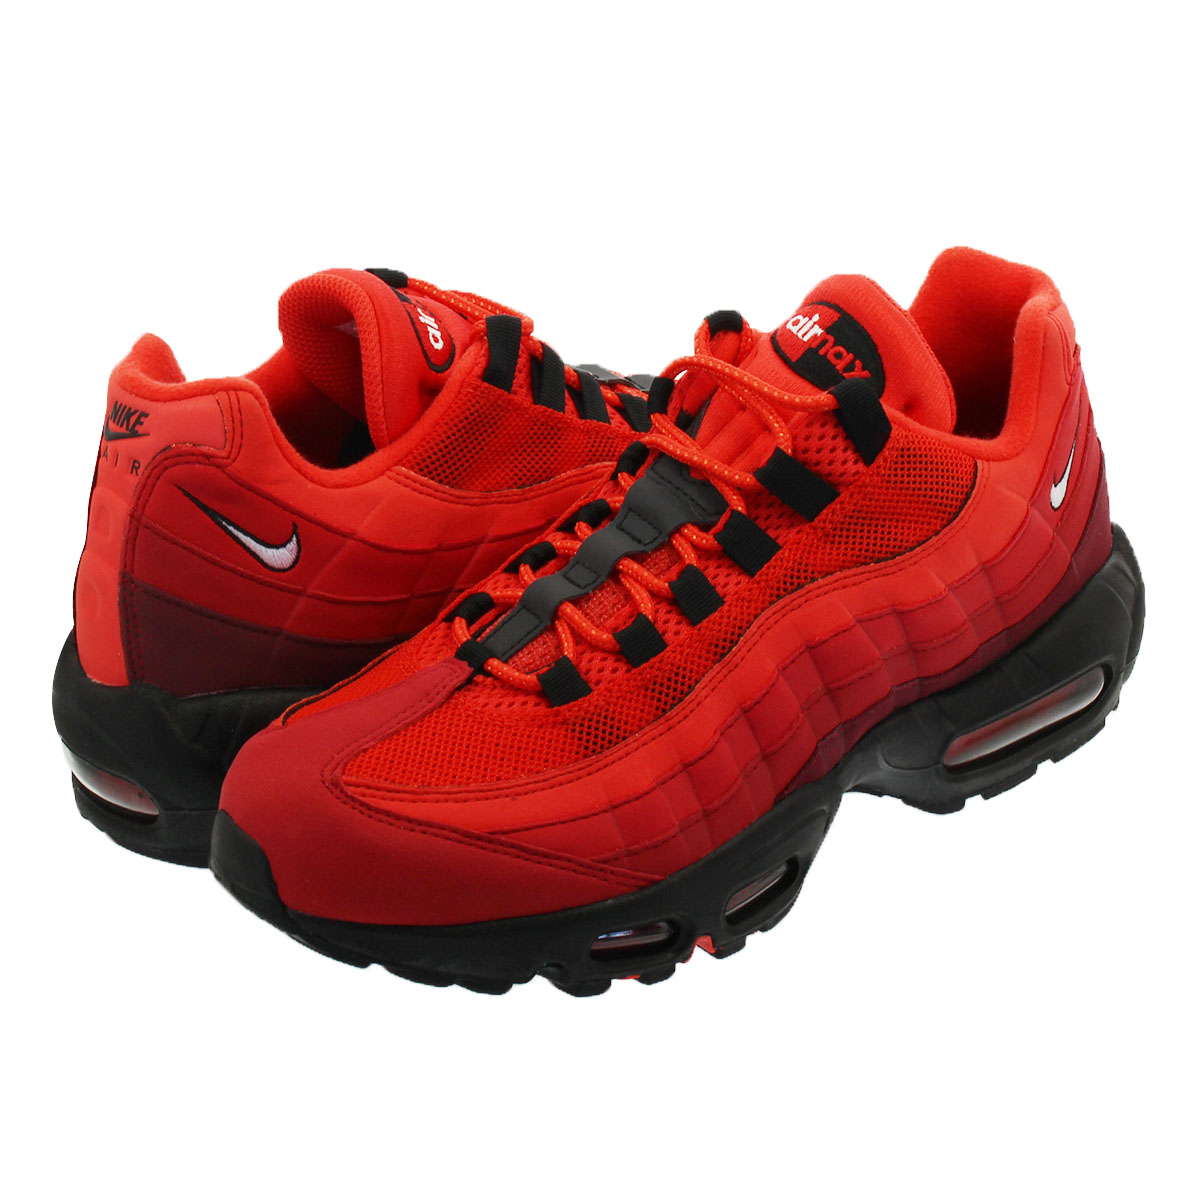 uk availability 6d87d abad7 Categories. « All Categories · Shoes · Men s Shoes · Sneakers · NIKE AIR  MAX 95 ...